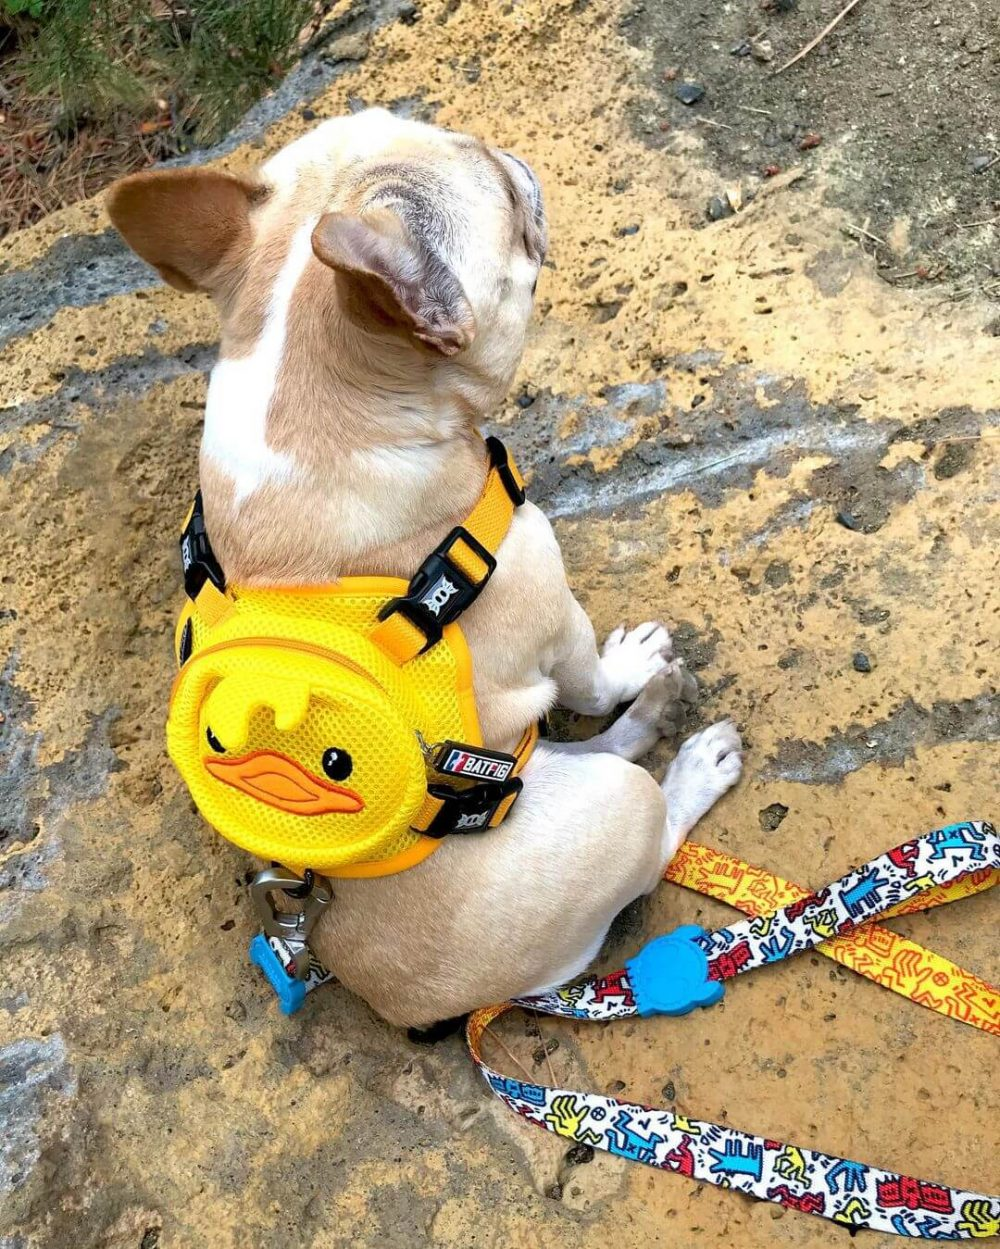 BATPIG Backpack Harness Ducky Customer Photo 4